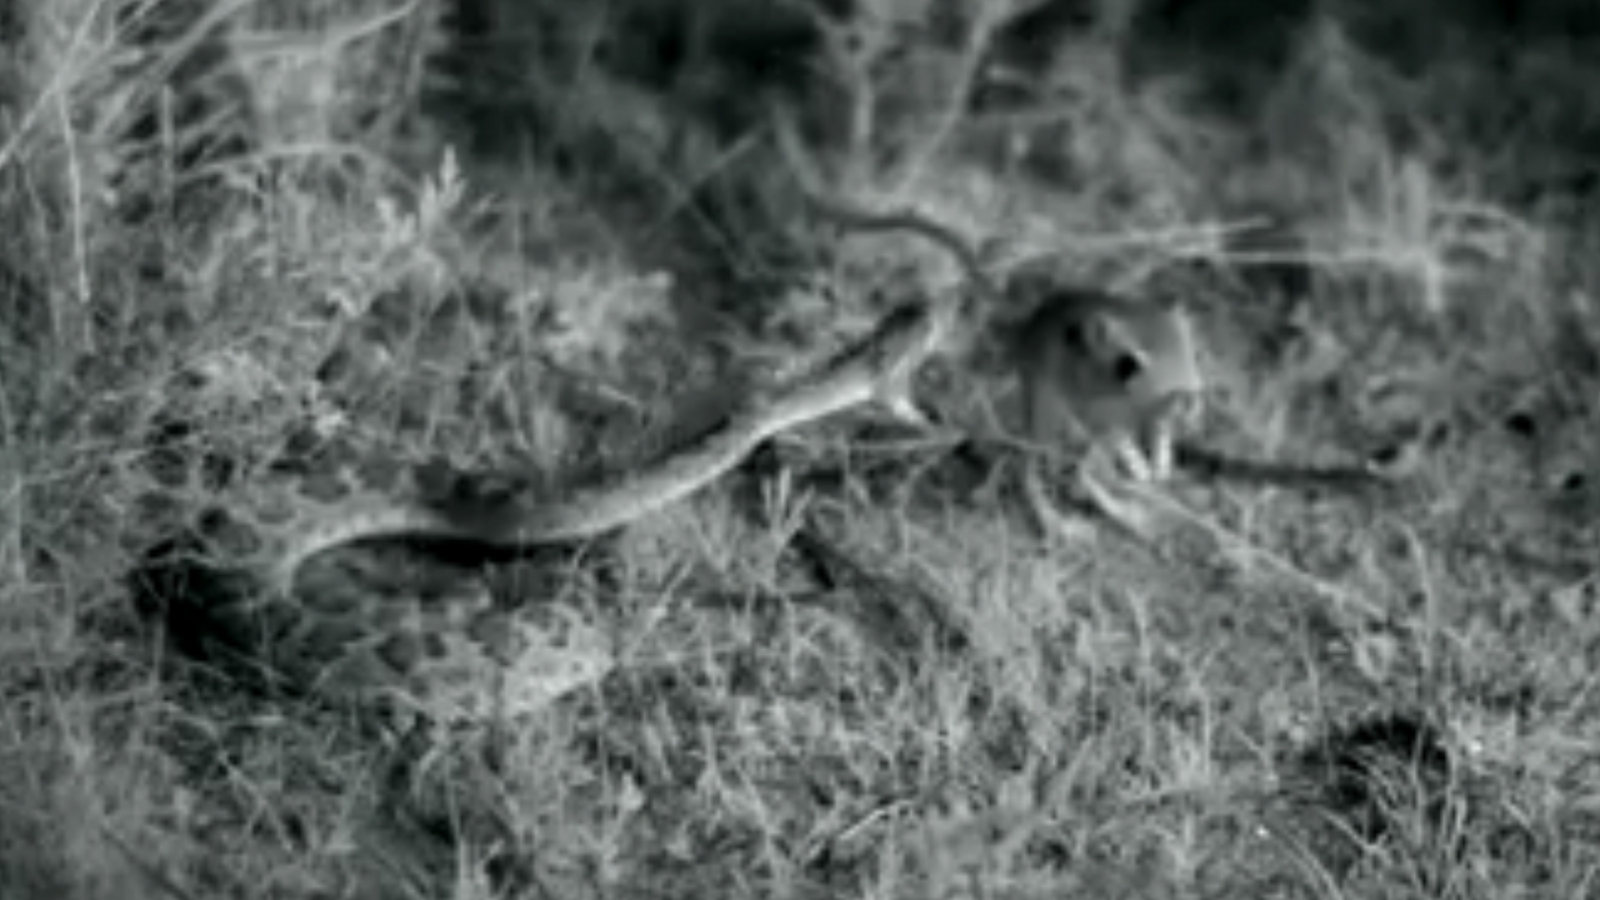 High-speed viper strike caught on camera at 500 frames per second